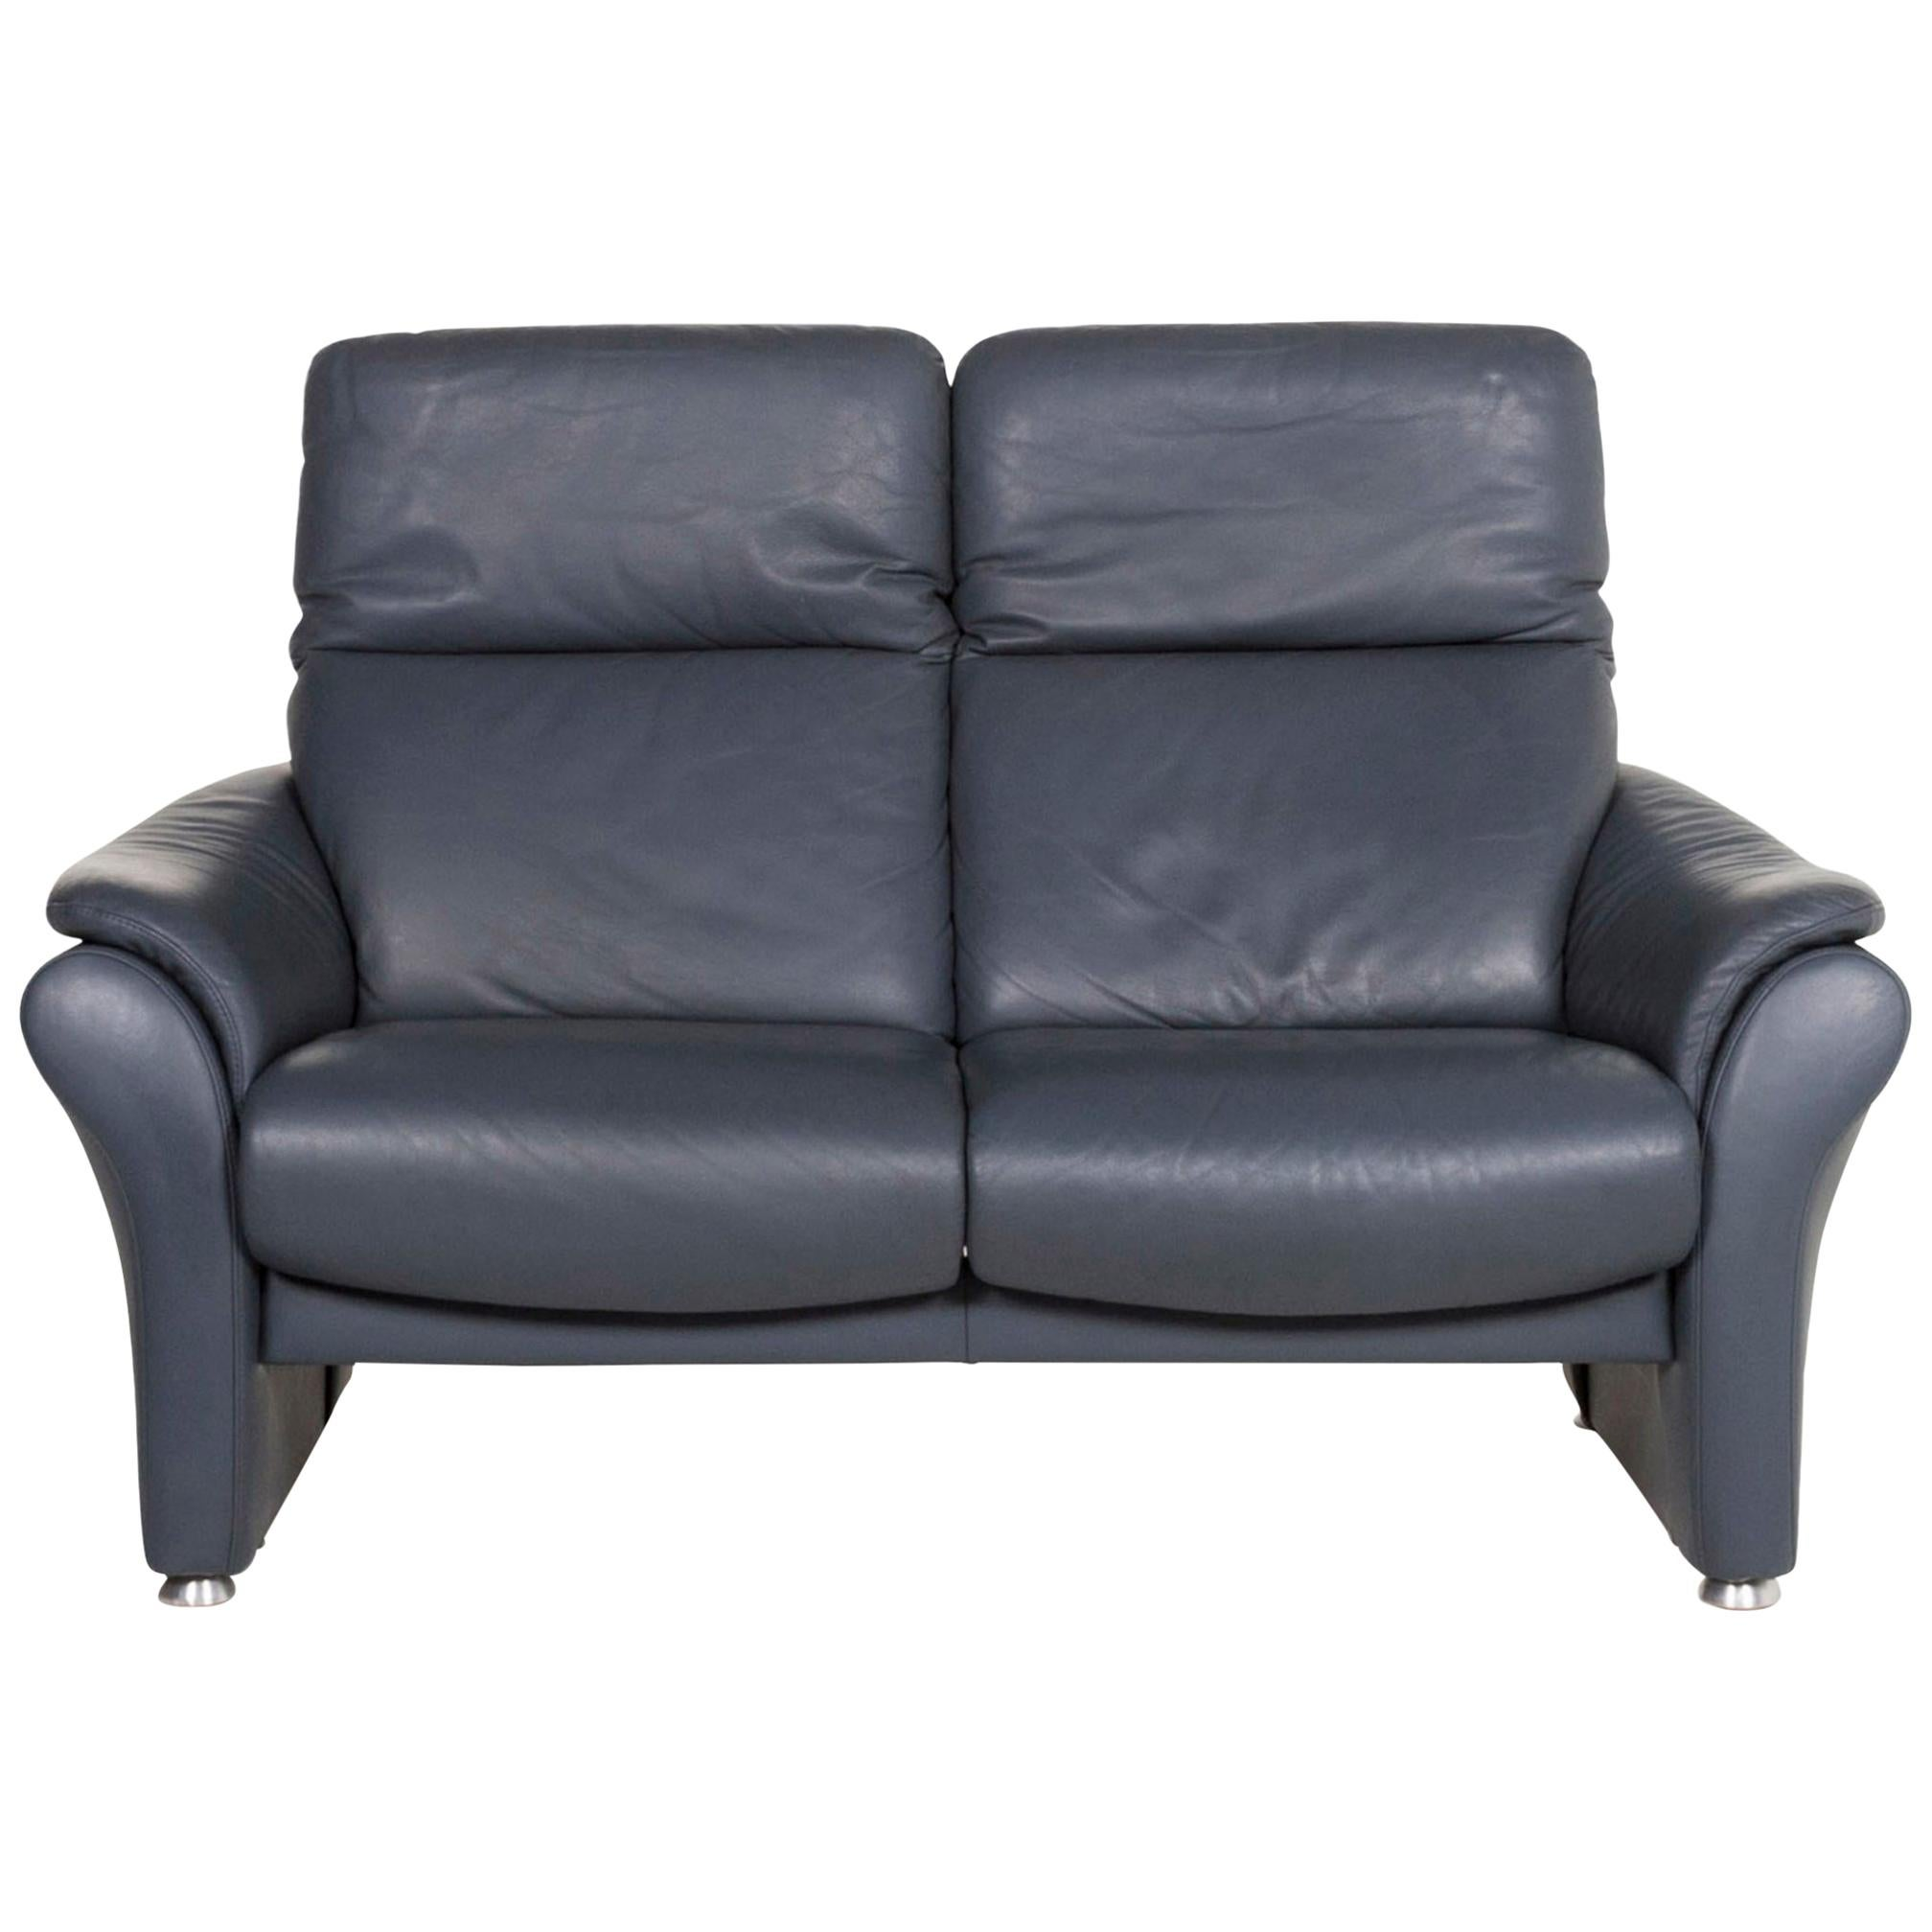 Willi Schillig Ergoline Leather Sofa Blue Two-Seat Function Relax Function